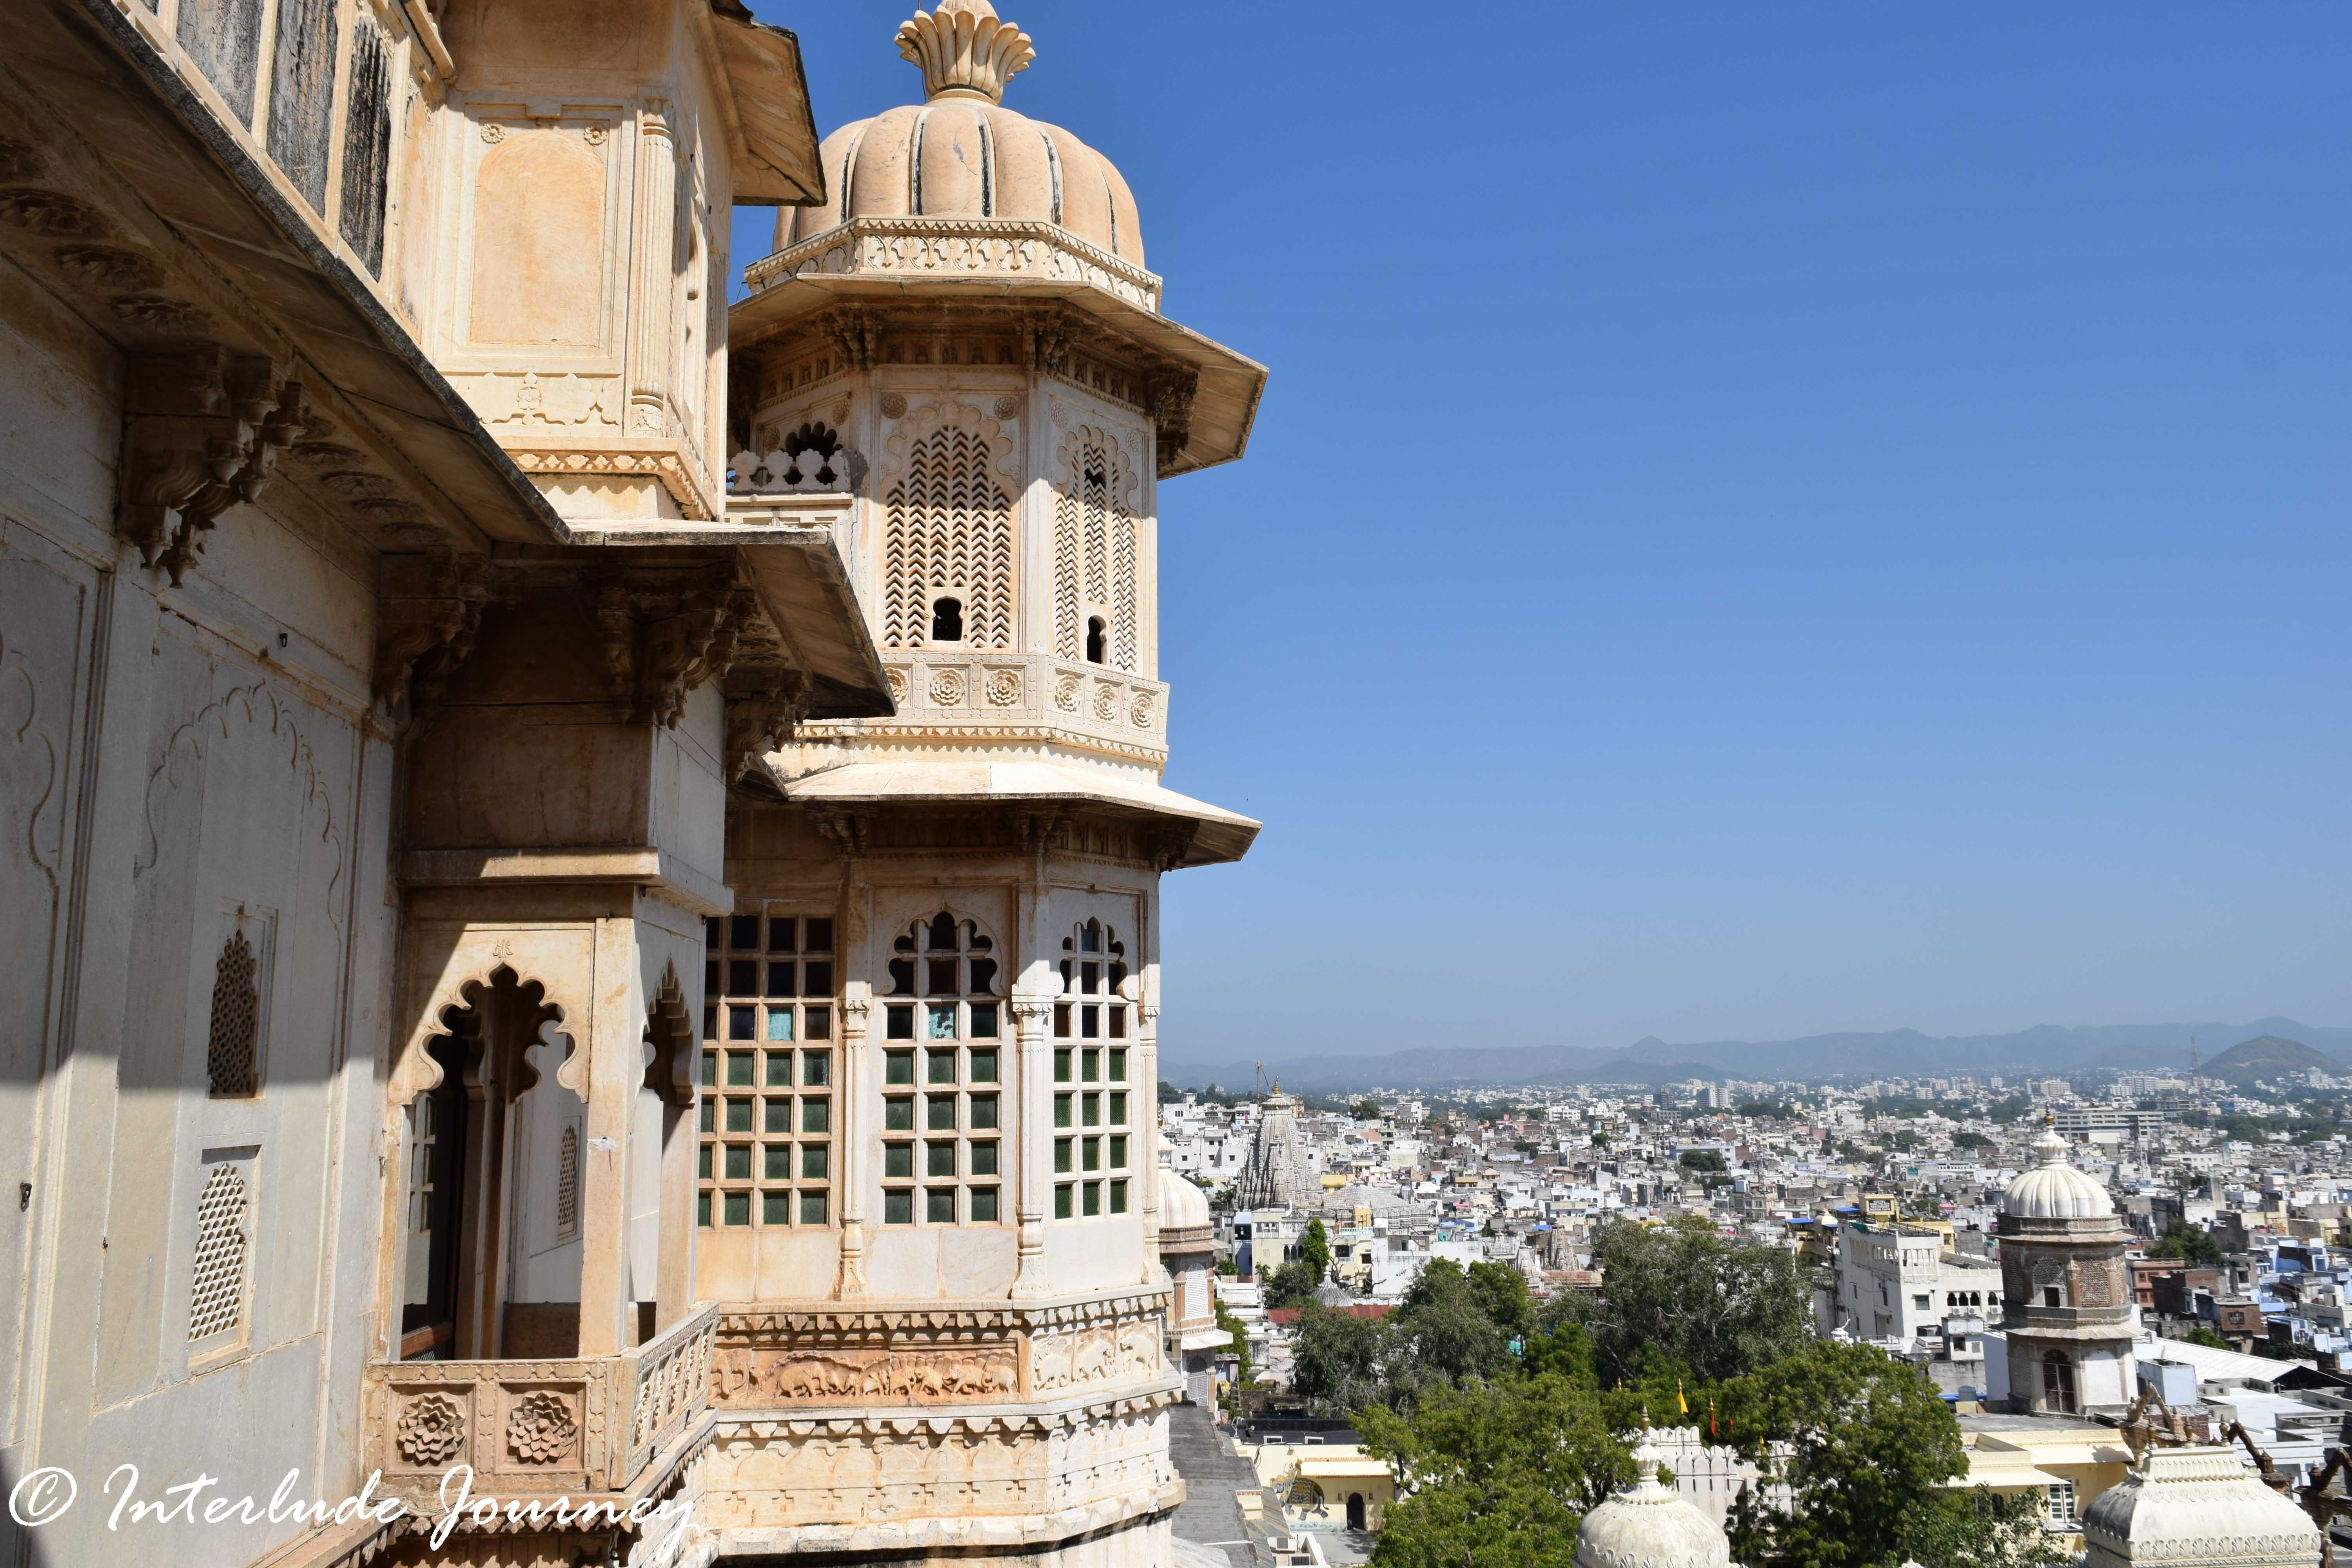 The view of Udaipur from one of the many cupolas in Udaipur City palace